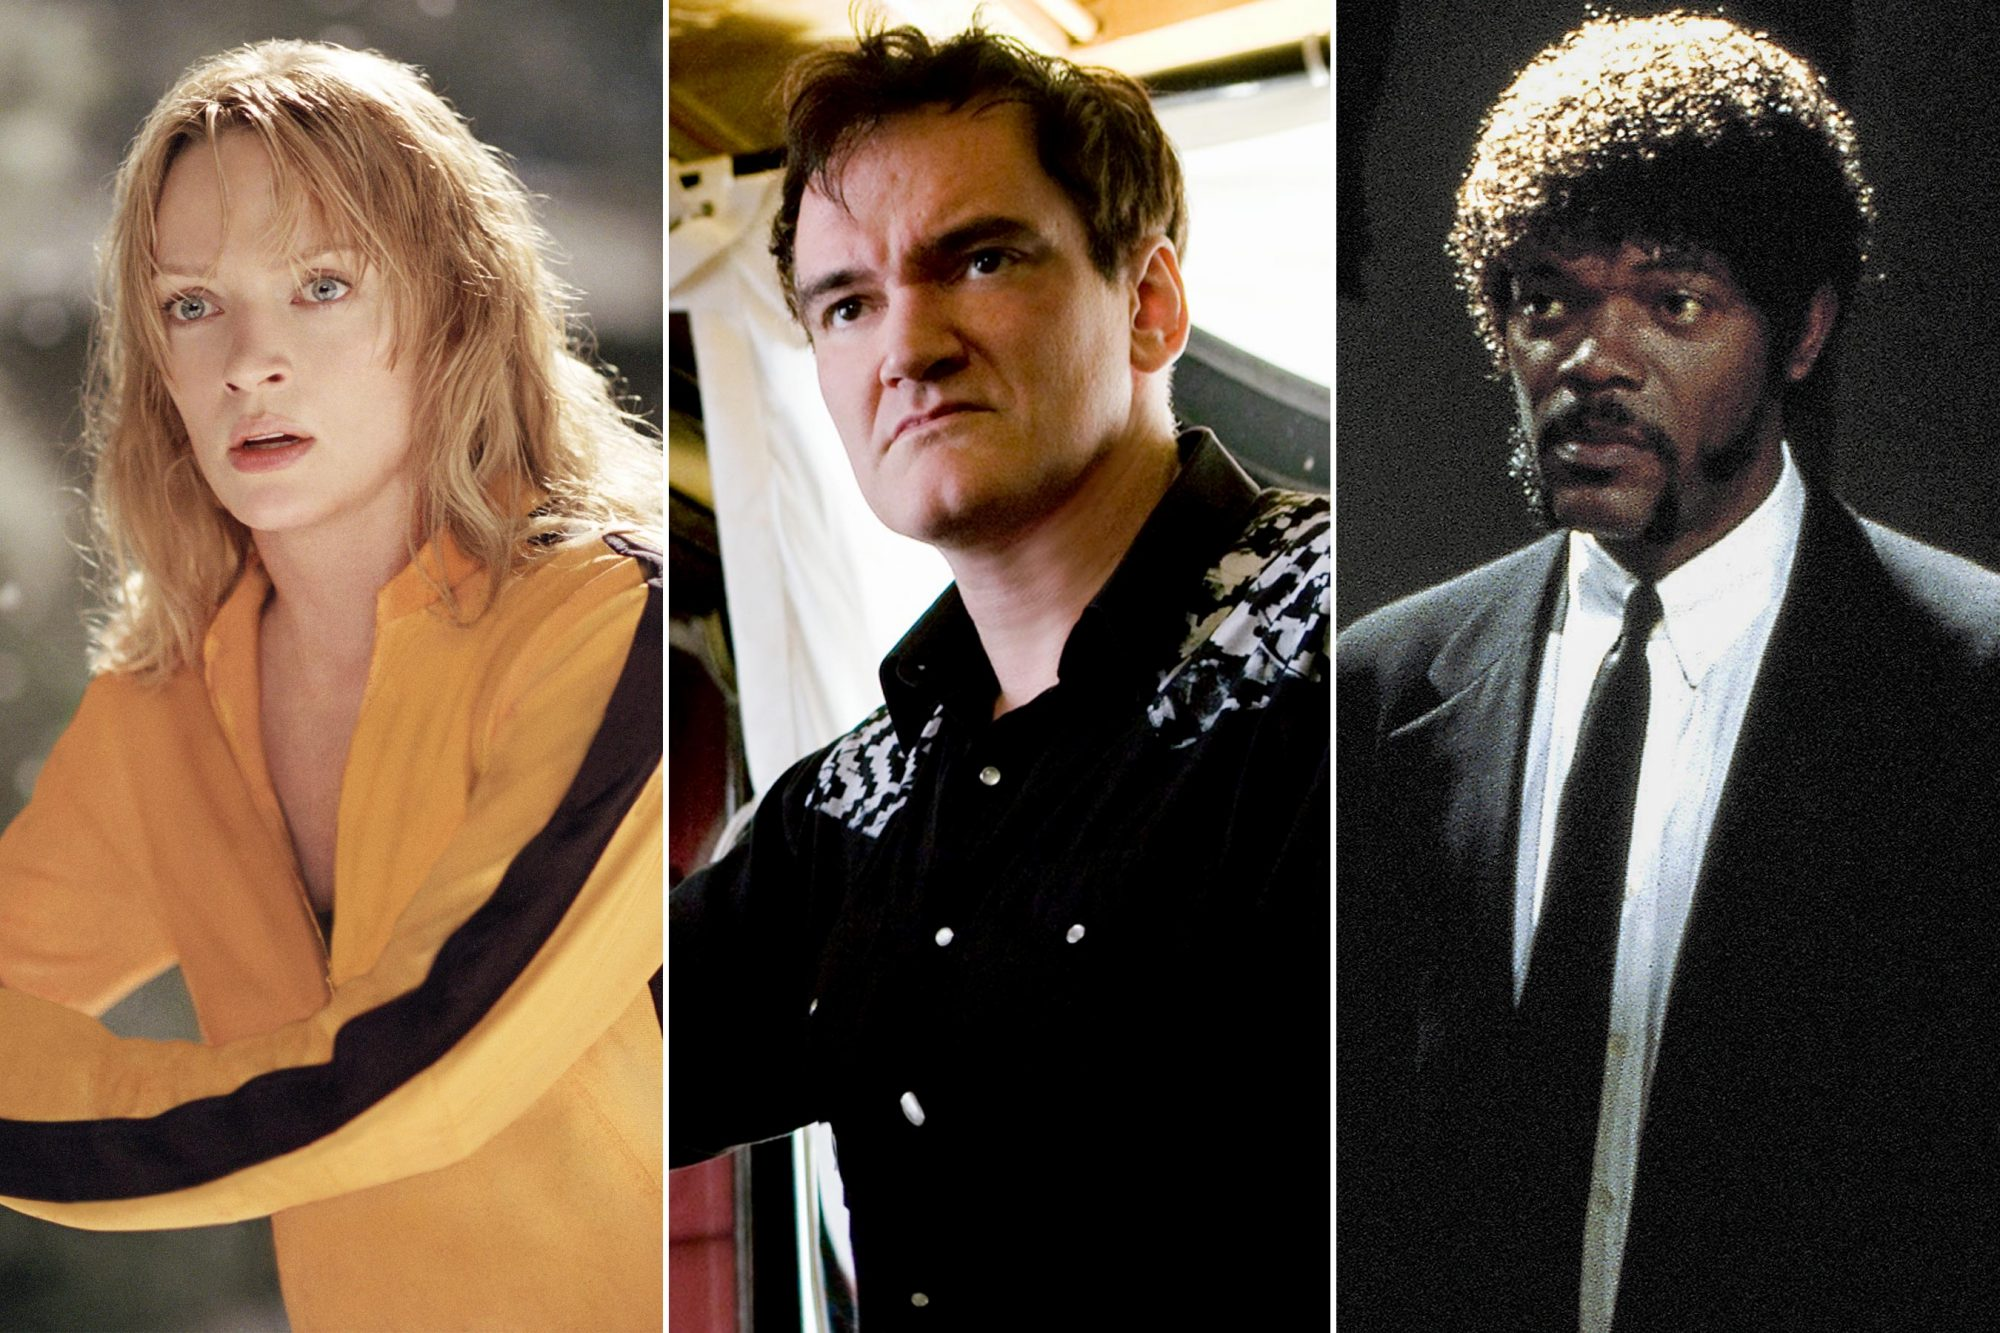 Tarantino's most memorable characters